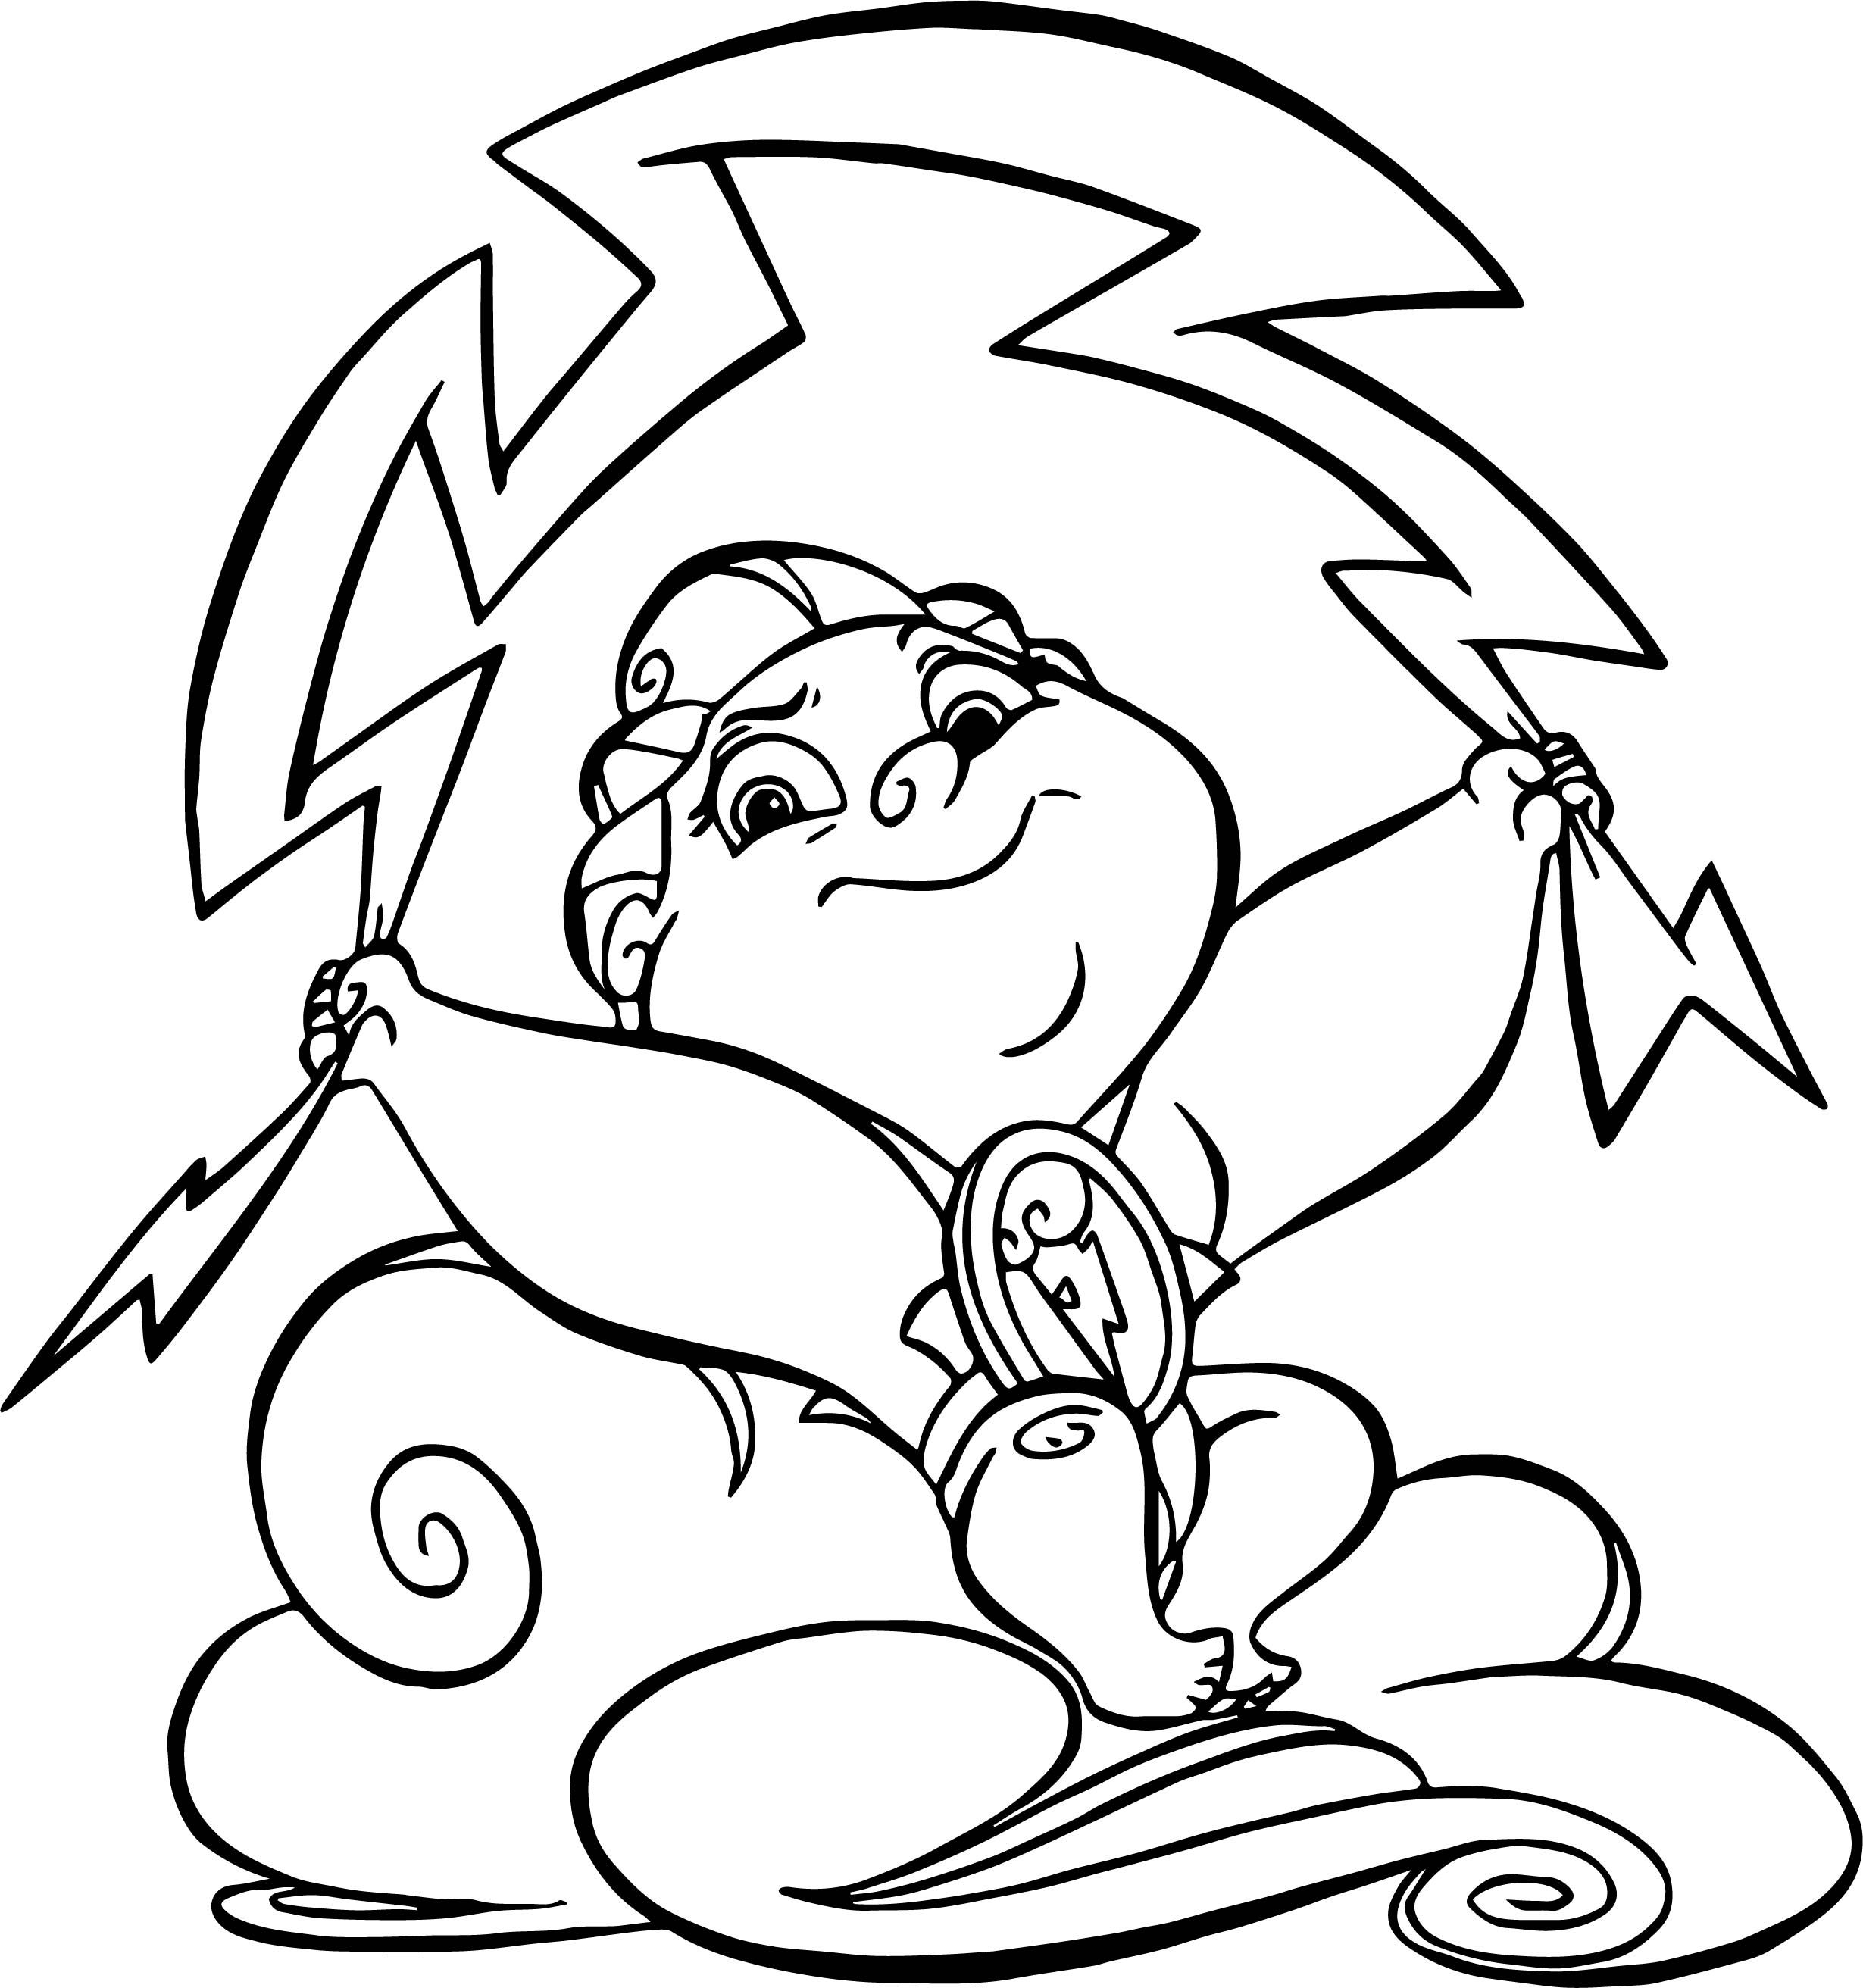 Awesome Thunder Baby Hercules Coloring Pages Disney Coloring Pages Coloring Pages Disney Paintings